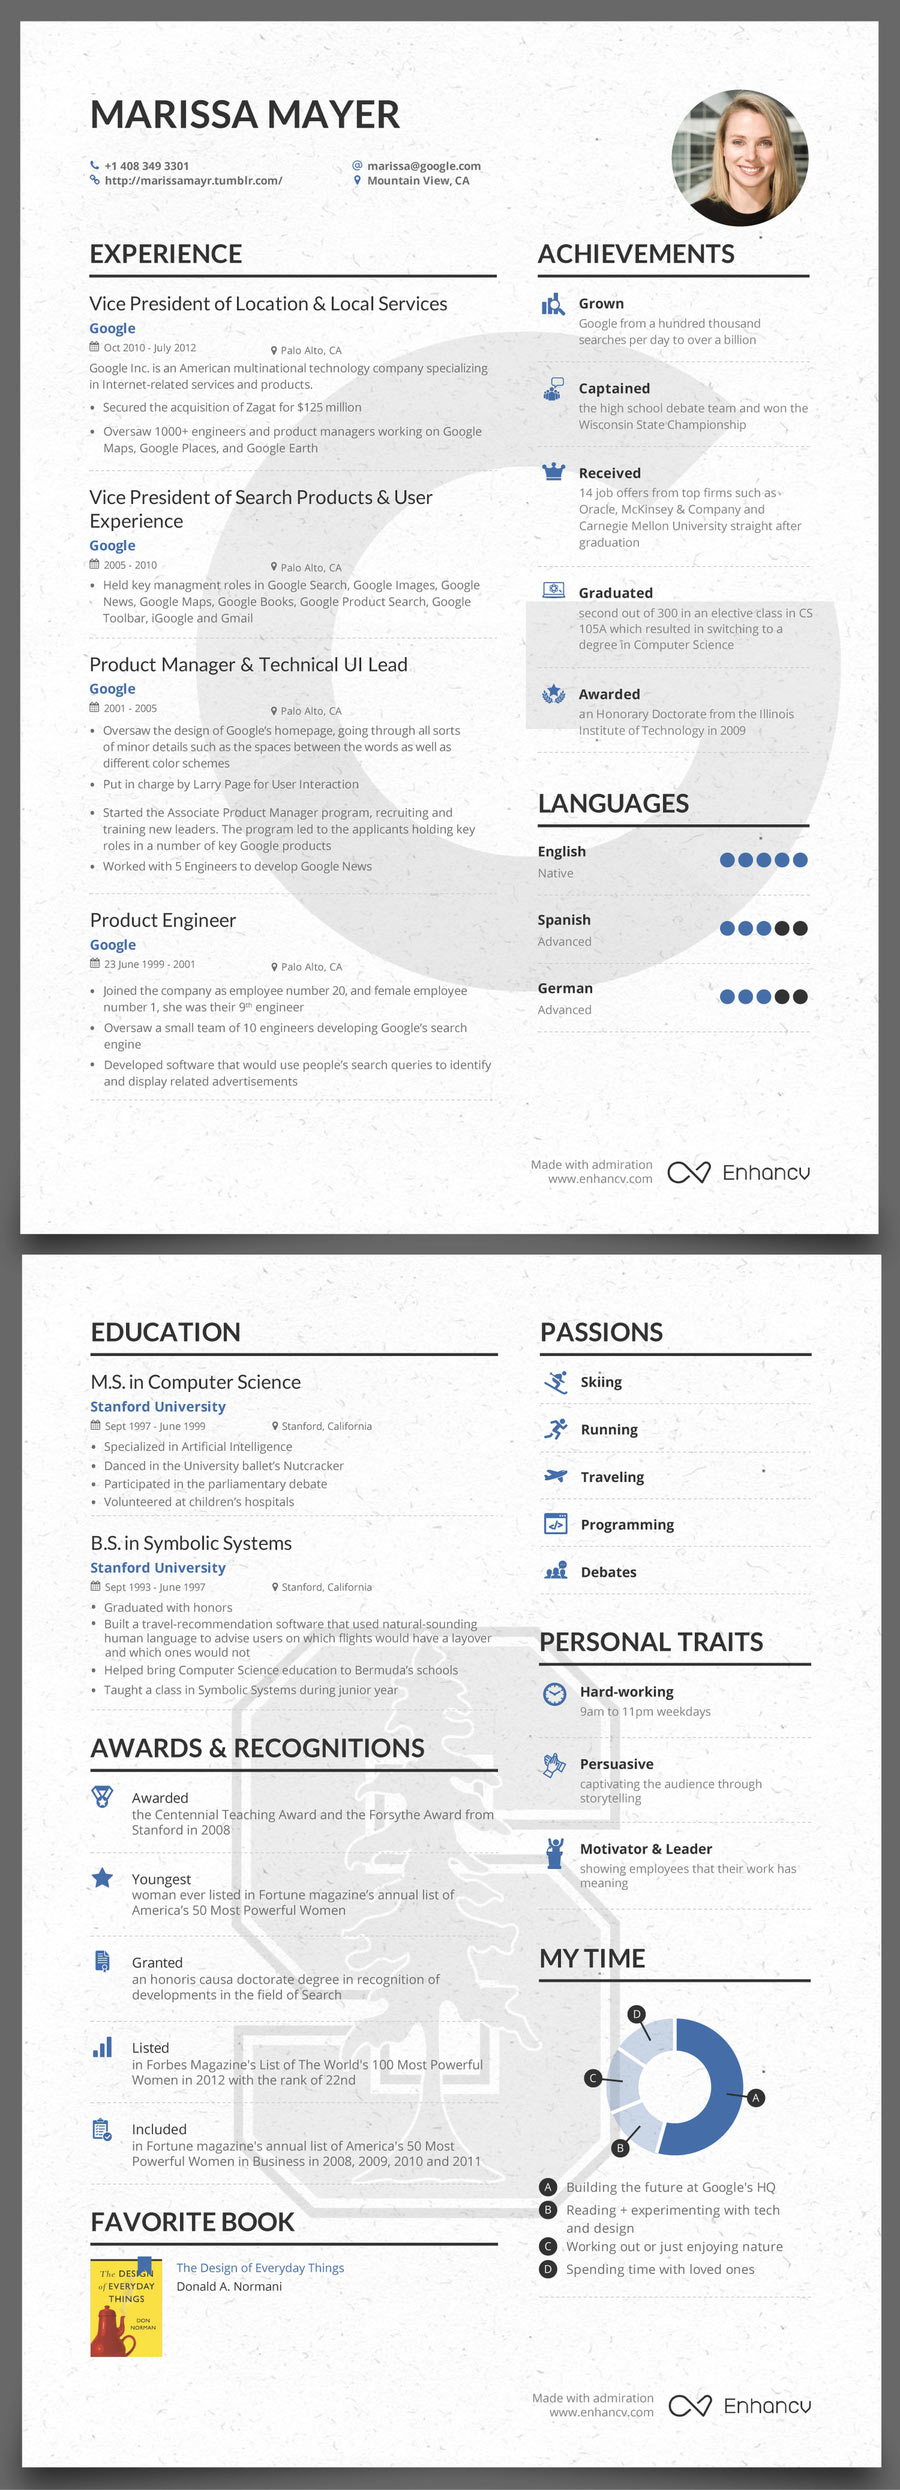 creativity looking resume yahoo resumes that got worldwide attention easyjob resume builder resume template images about creative diy resumes on